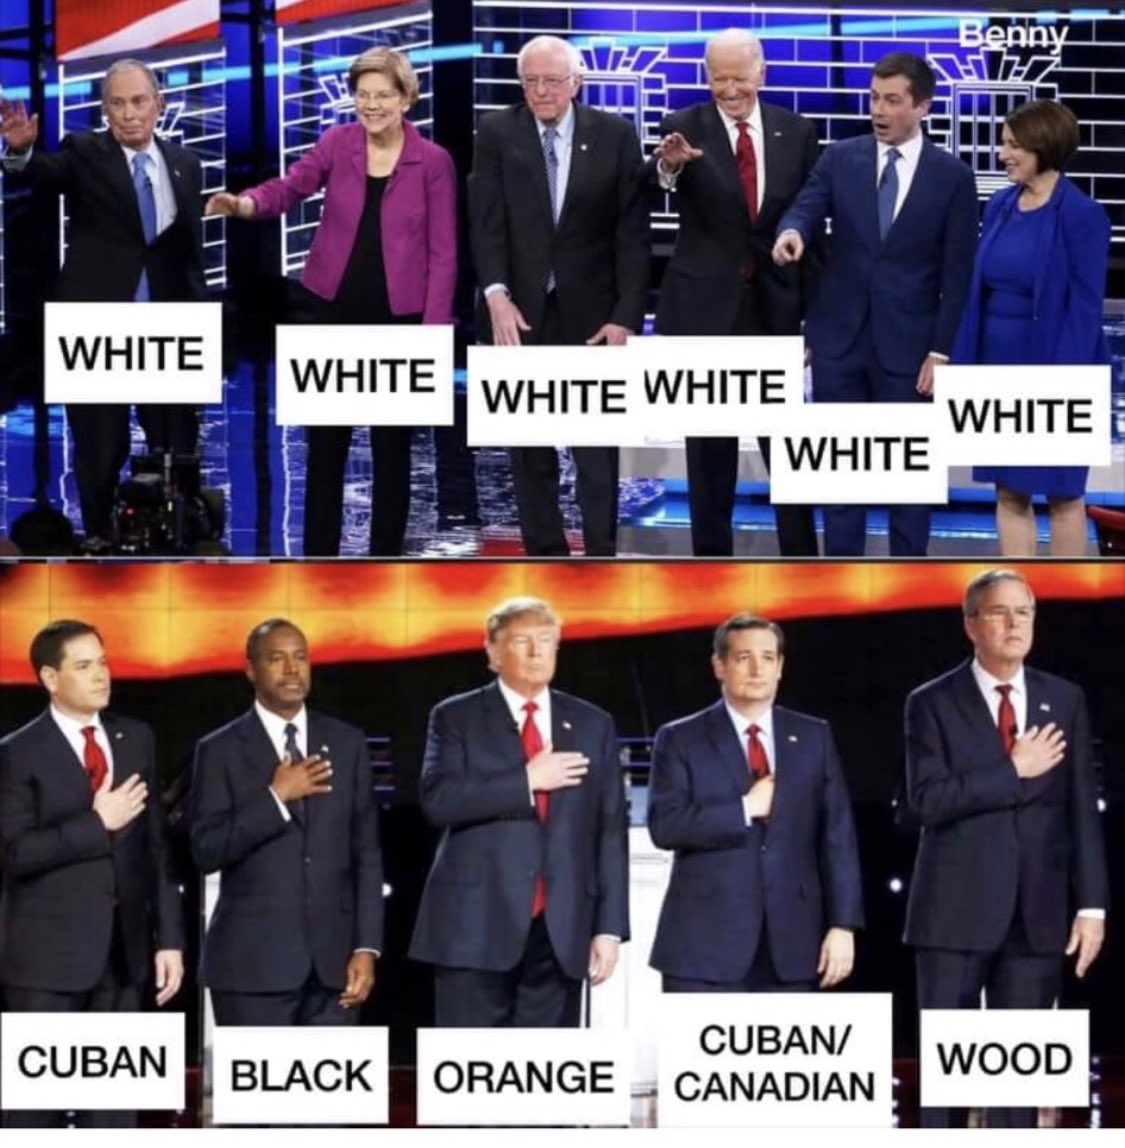 Democrats yap about diversity, and yet... (silly, but funny)